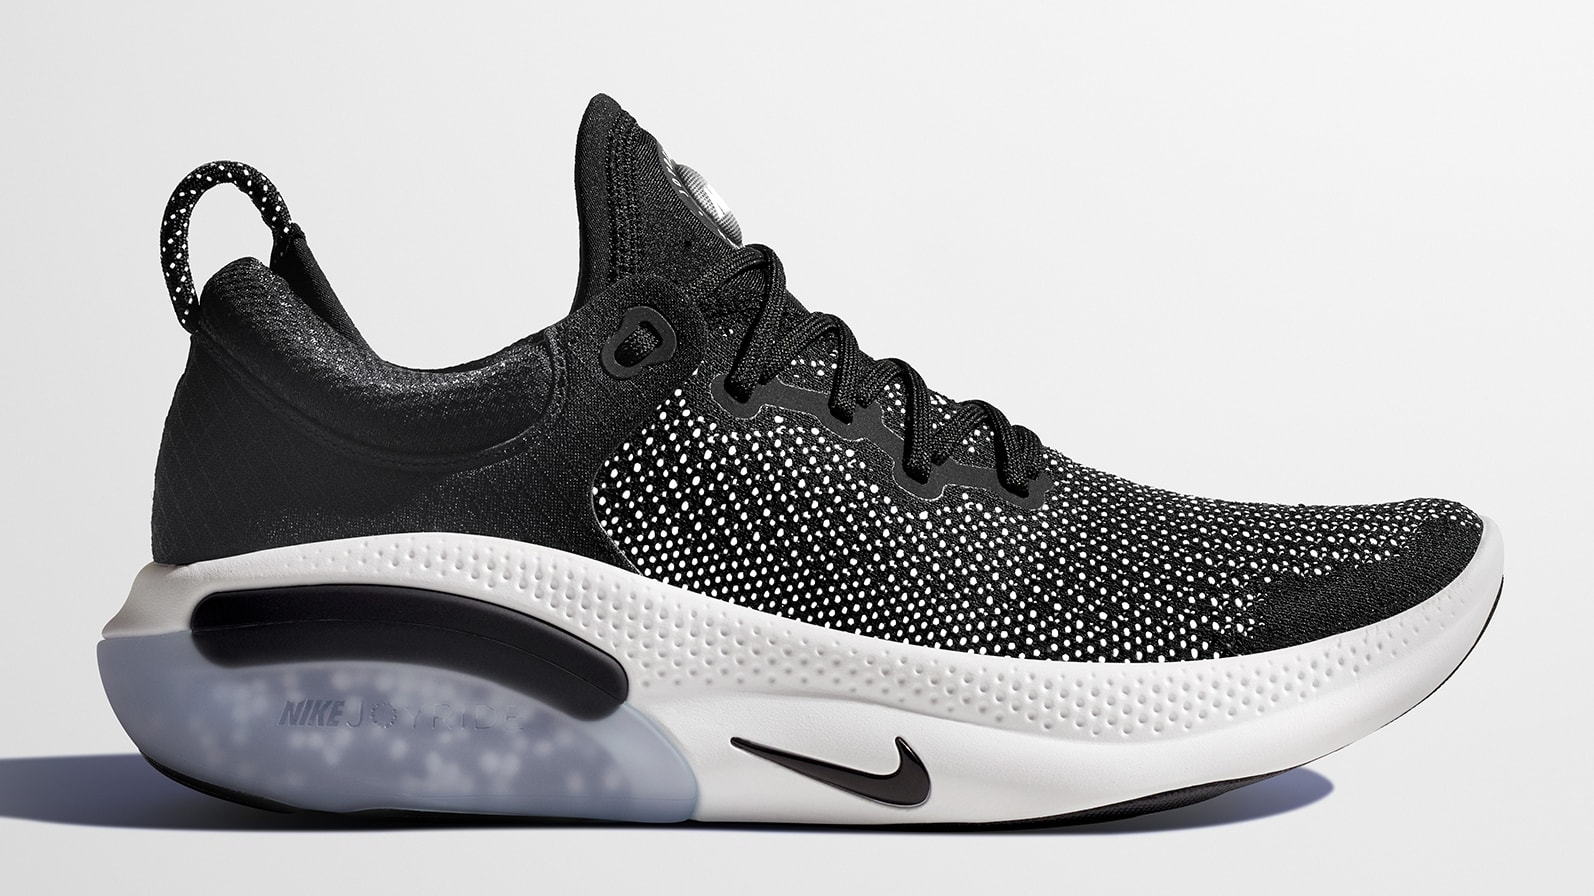 Nike Joyride Run Flyknit (Black)